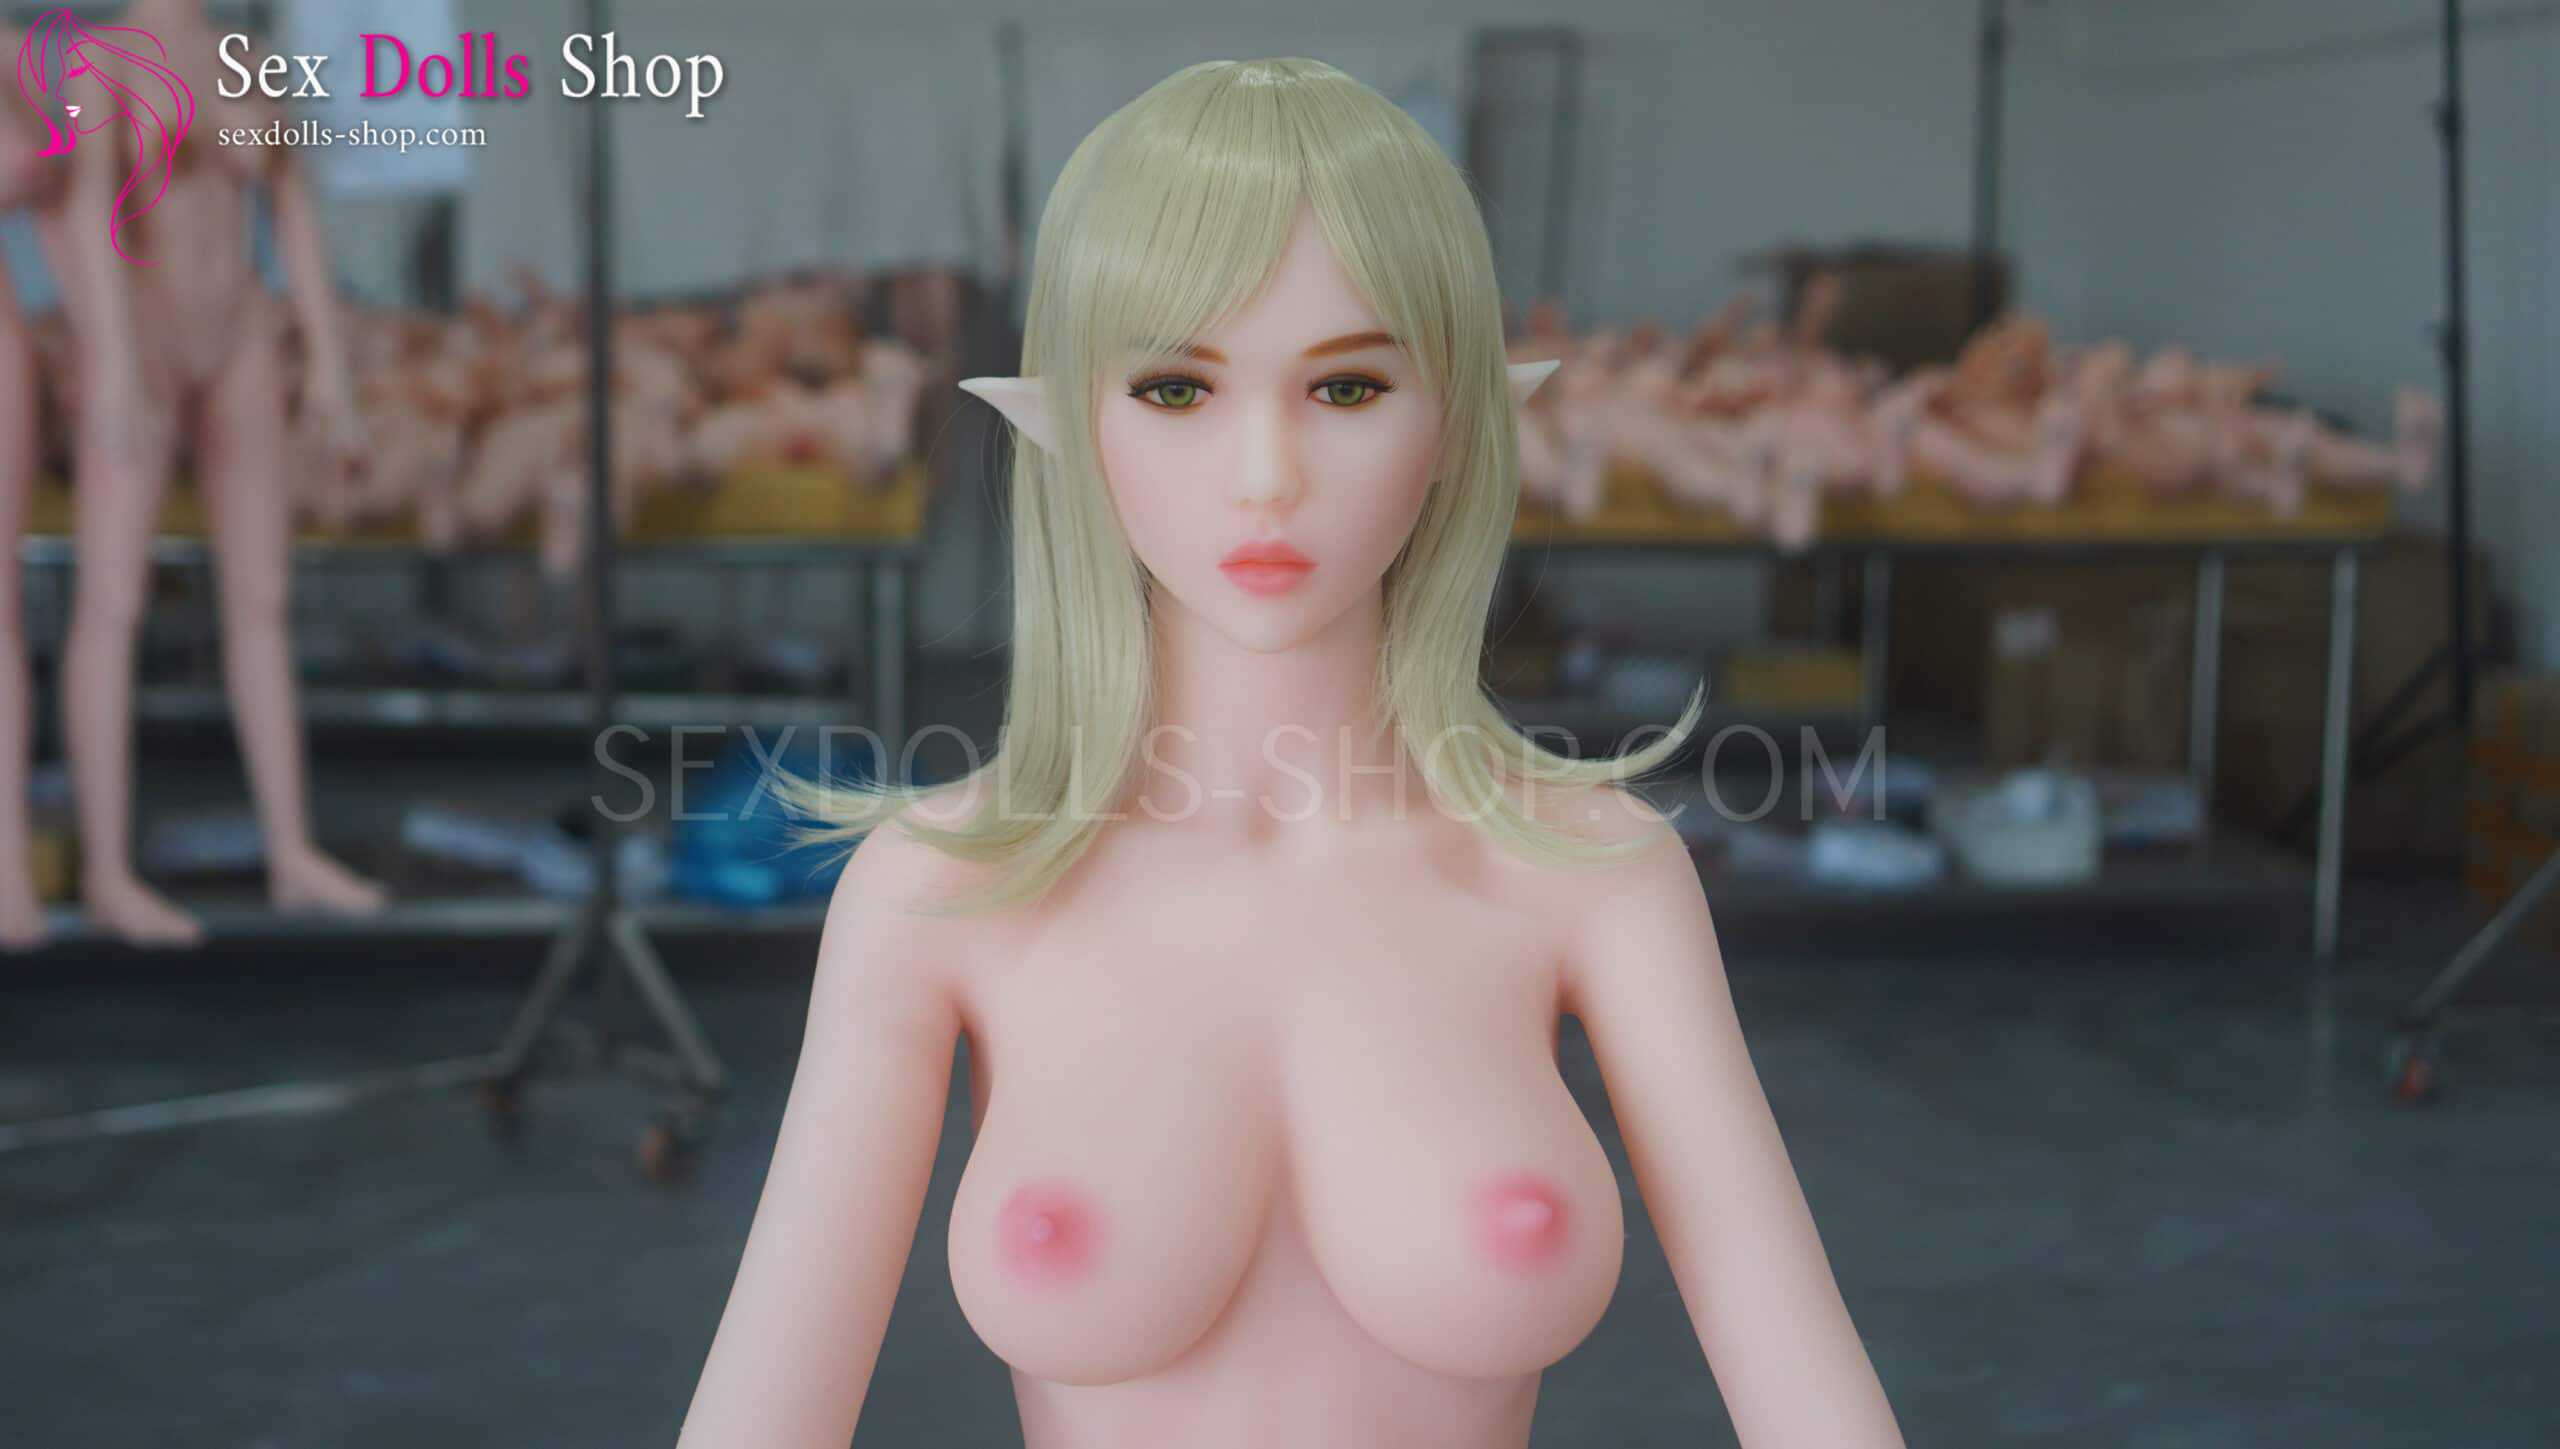 doll4ever Dora 155cm D cup pink white skin pink nipples